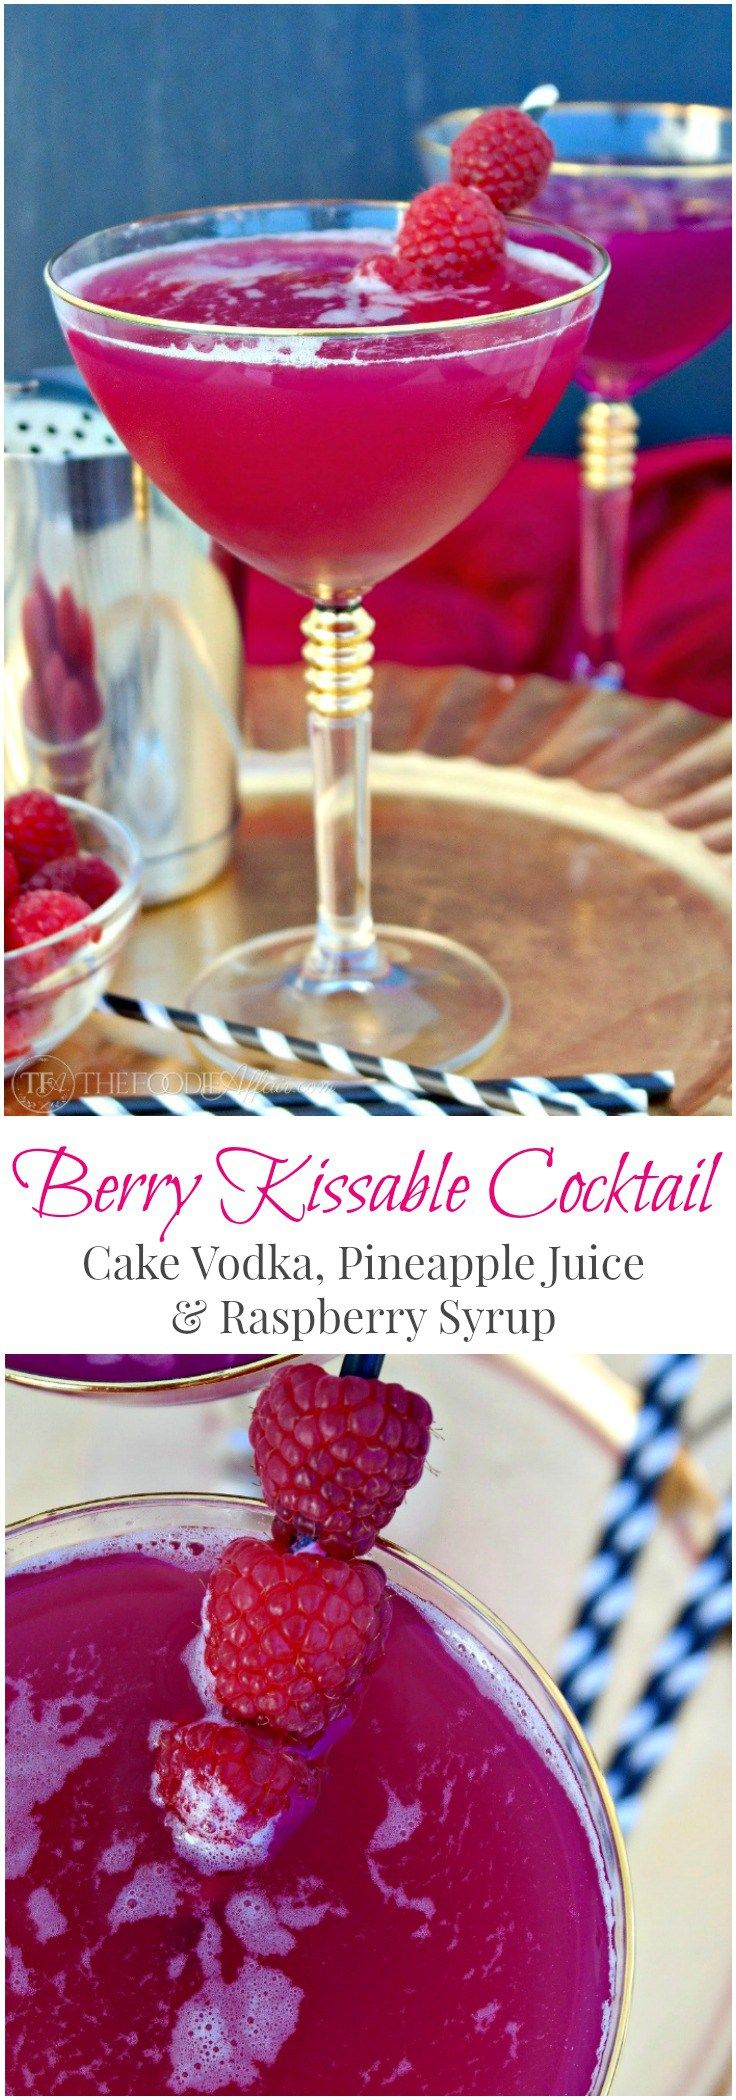 Berry Kissable Cocktail made with ruby red raspberries, cake vodka and pineapple juice! #cocktails #drinks #holiday #vodka